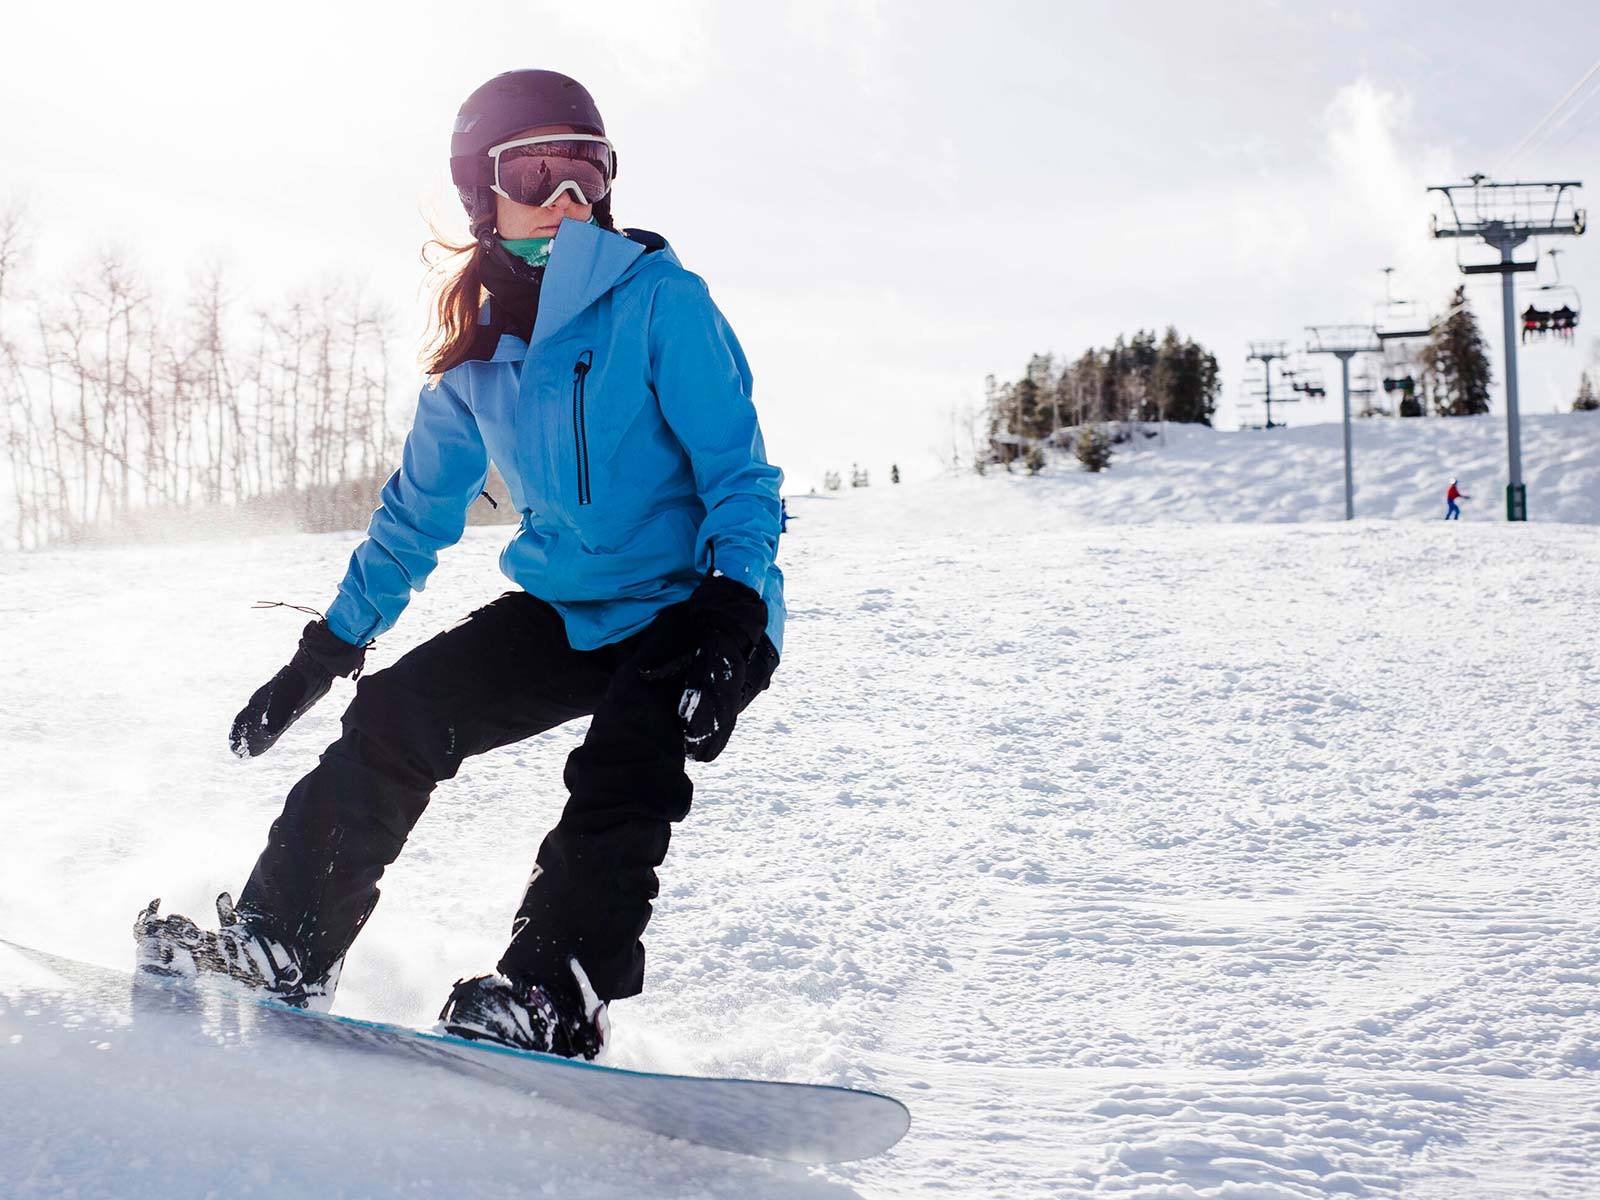 Cool female snowboarder carving down a snowy slope